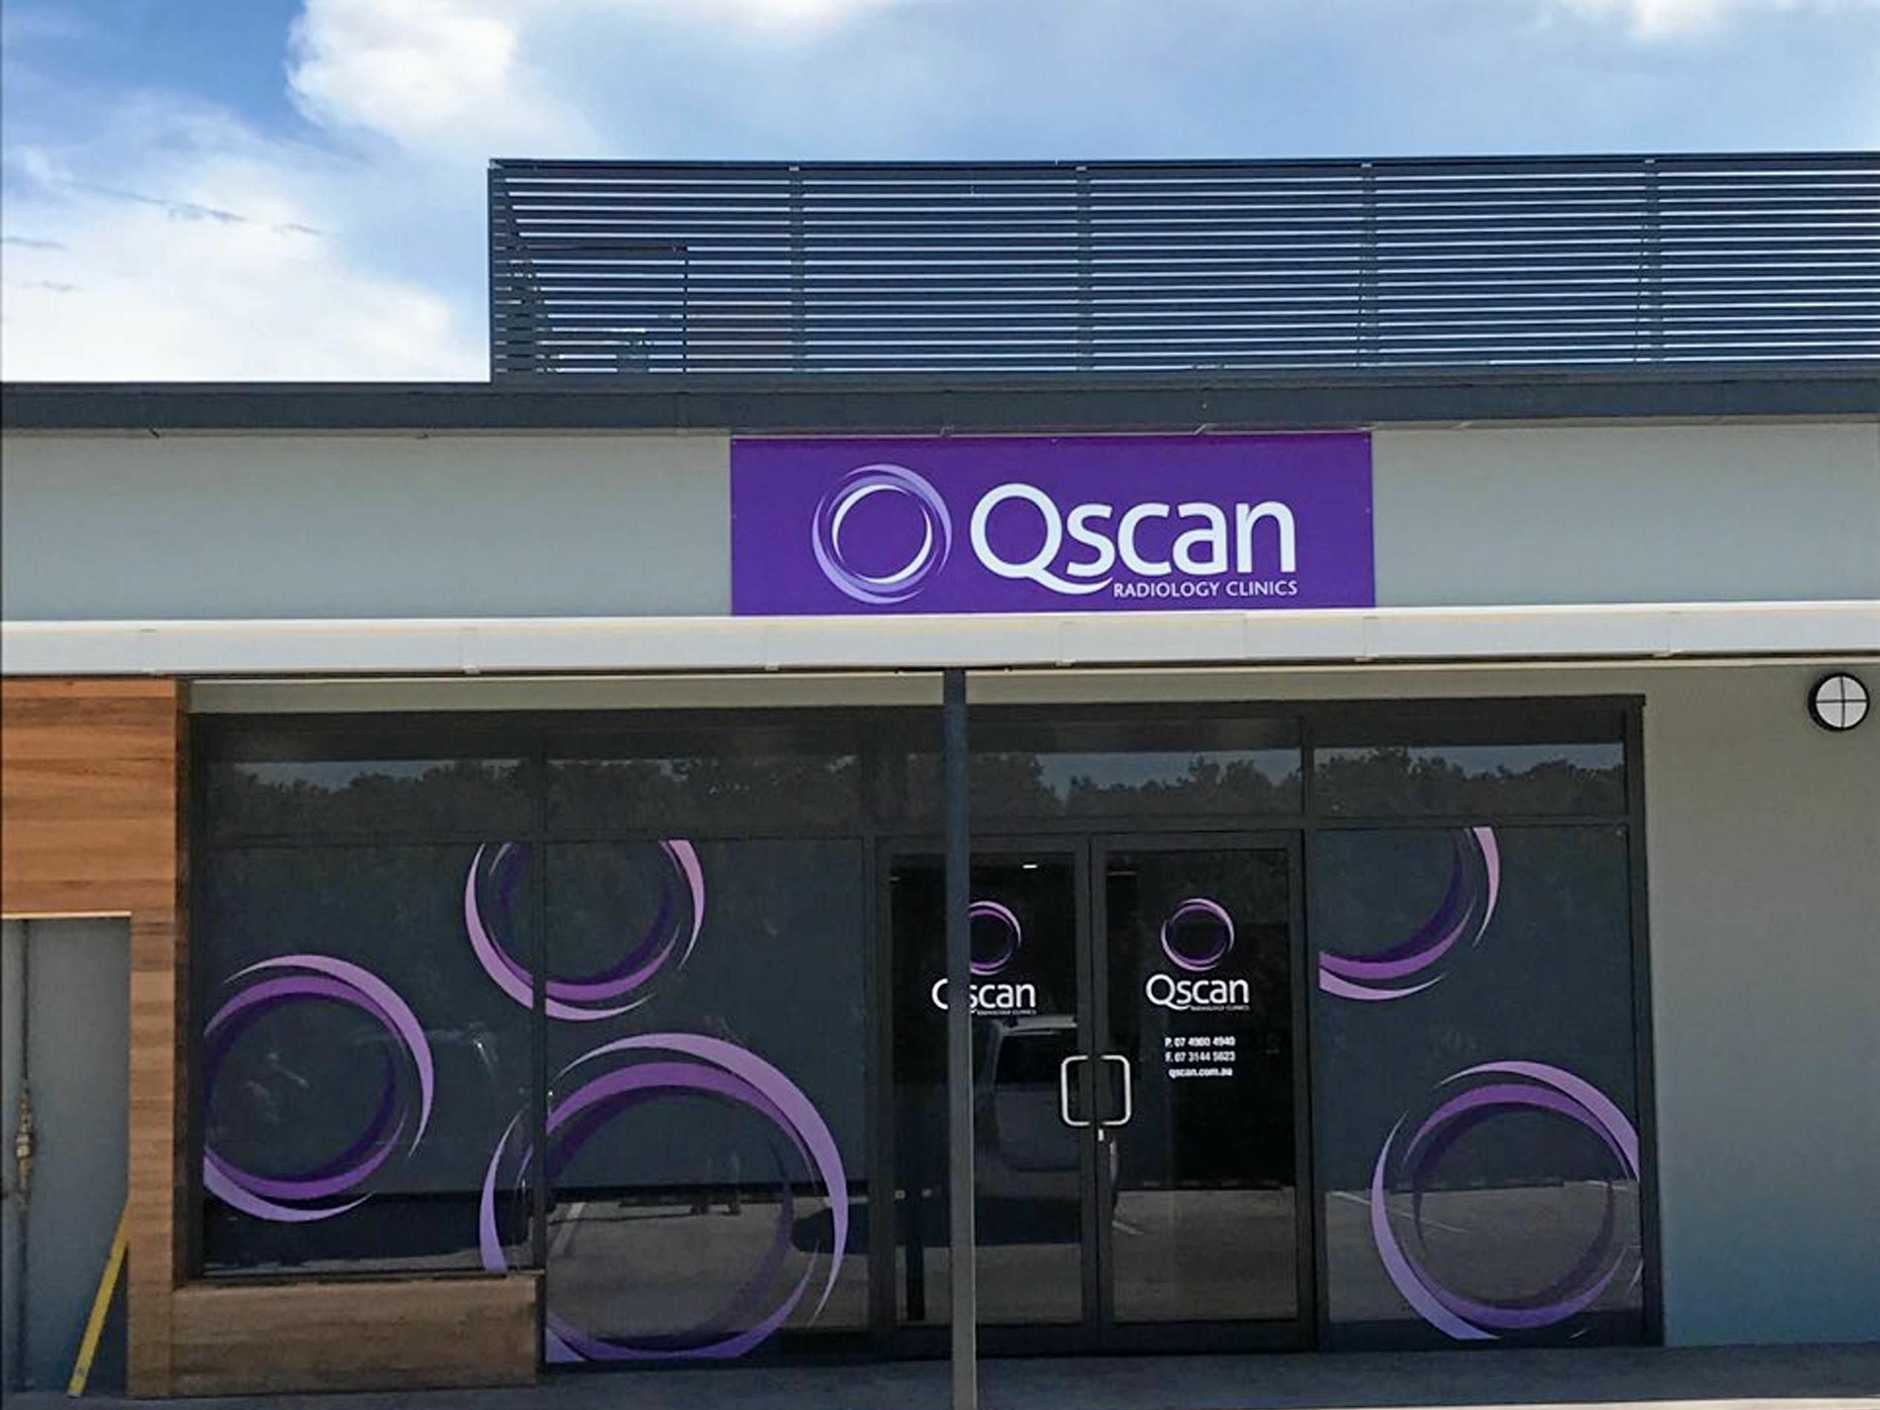 Qscan Radiology Group opening on Sams Road.